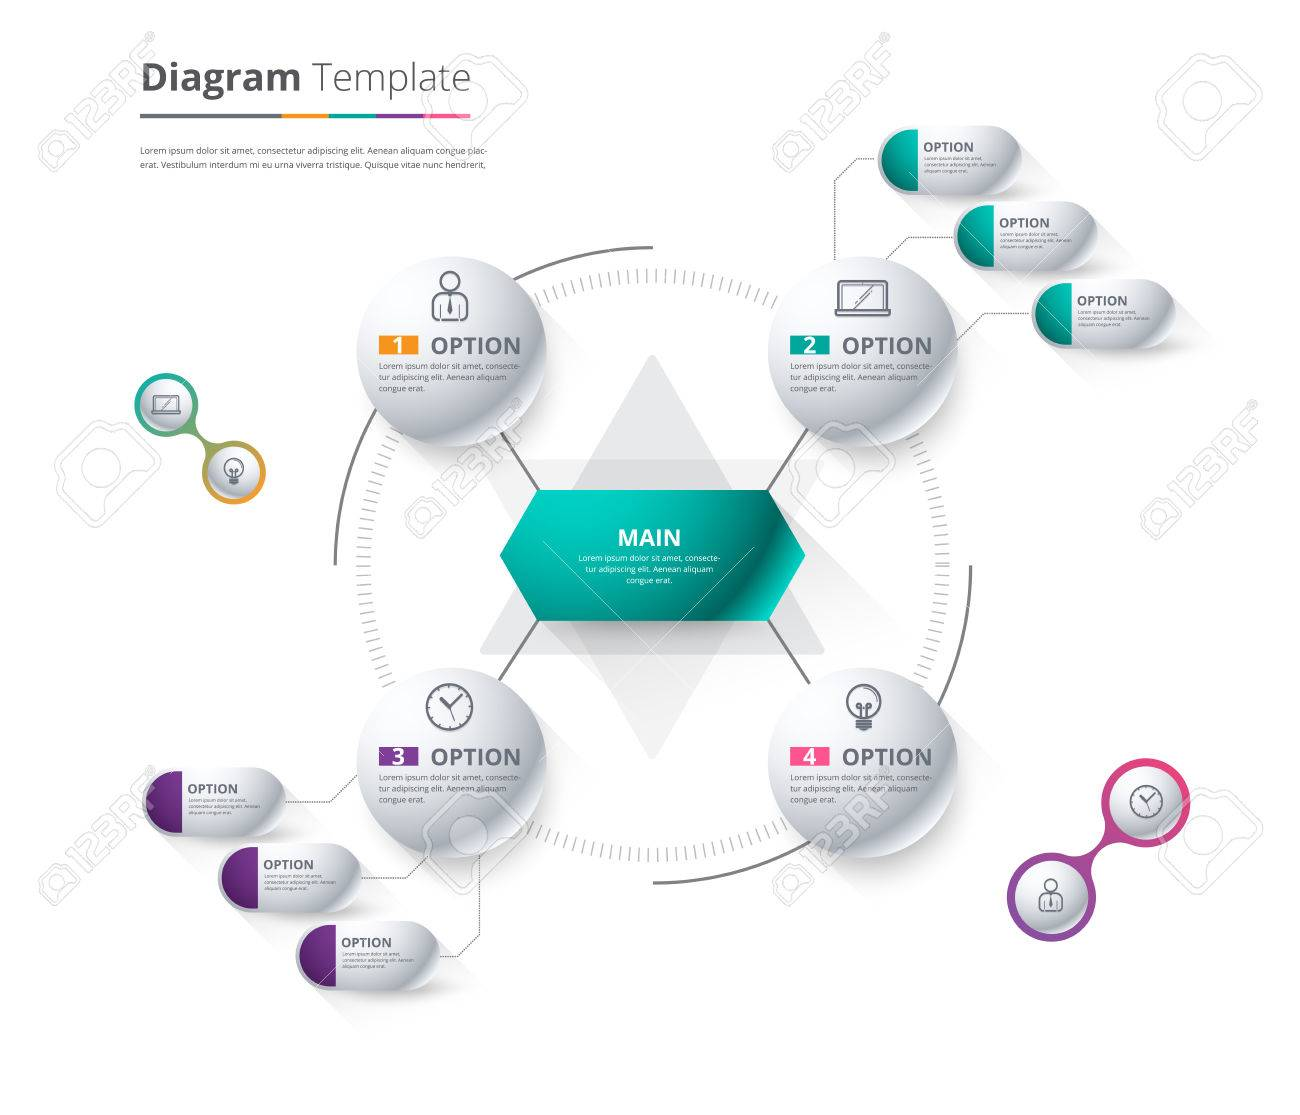 Diagram Template, Organization chart template. flow template, blank diagram for replace text, white color, Circle diagram, vector stock design. - 58753985